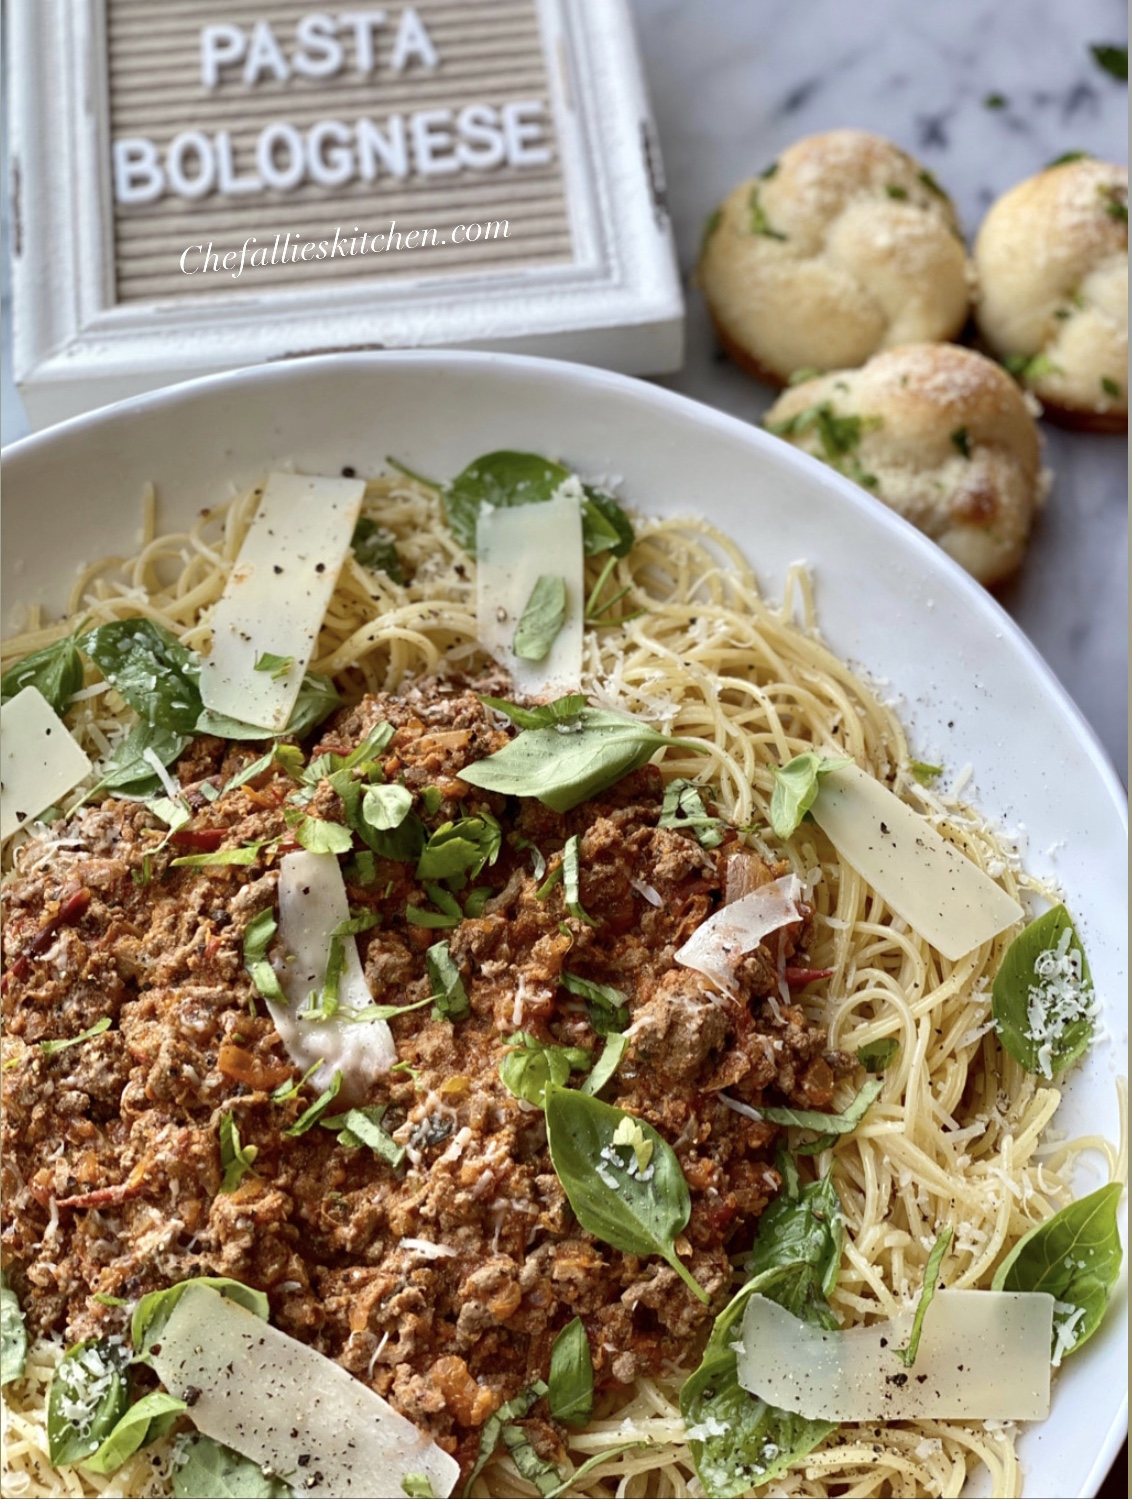 Pasta Bolognese With Garlic Knots